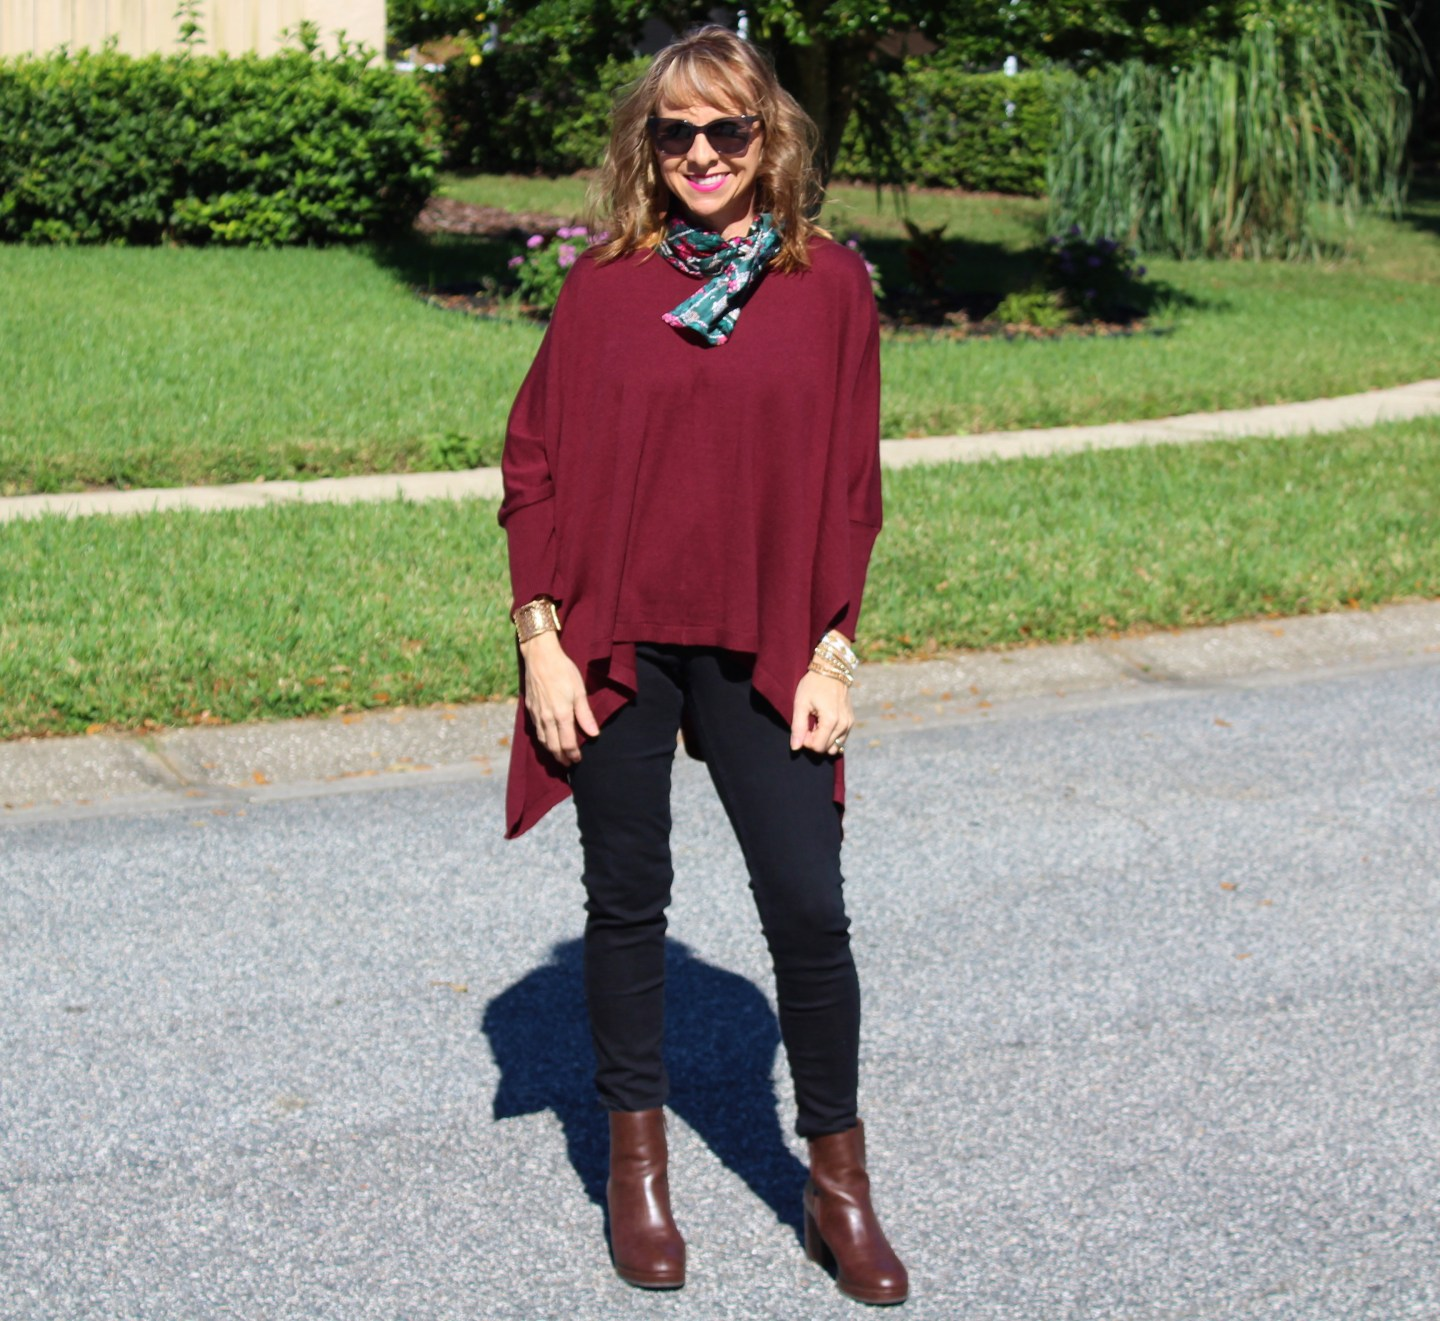 Poncho + Black Jeans + Silk Scarf + Boots